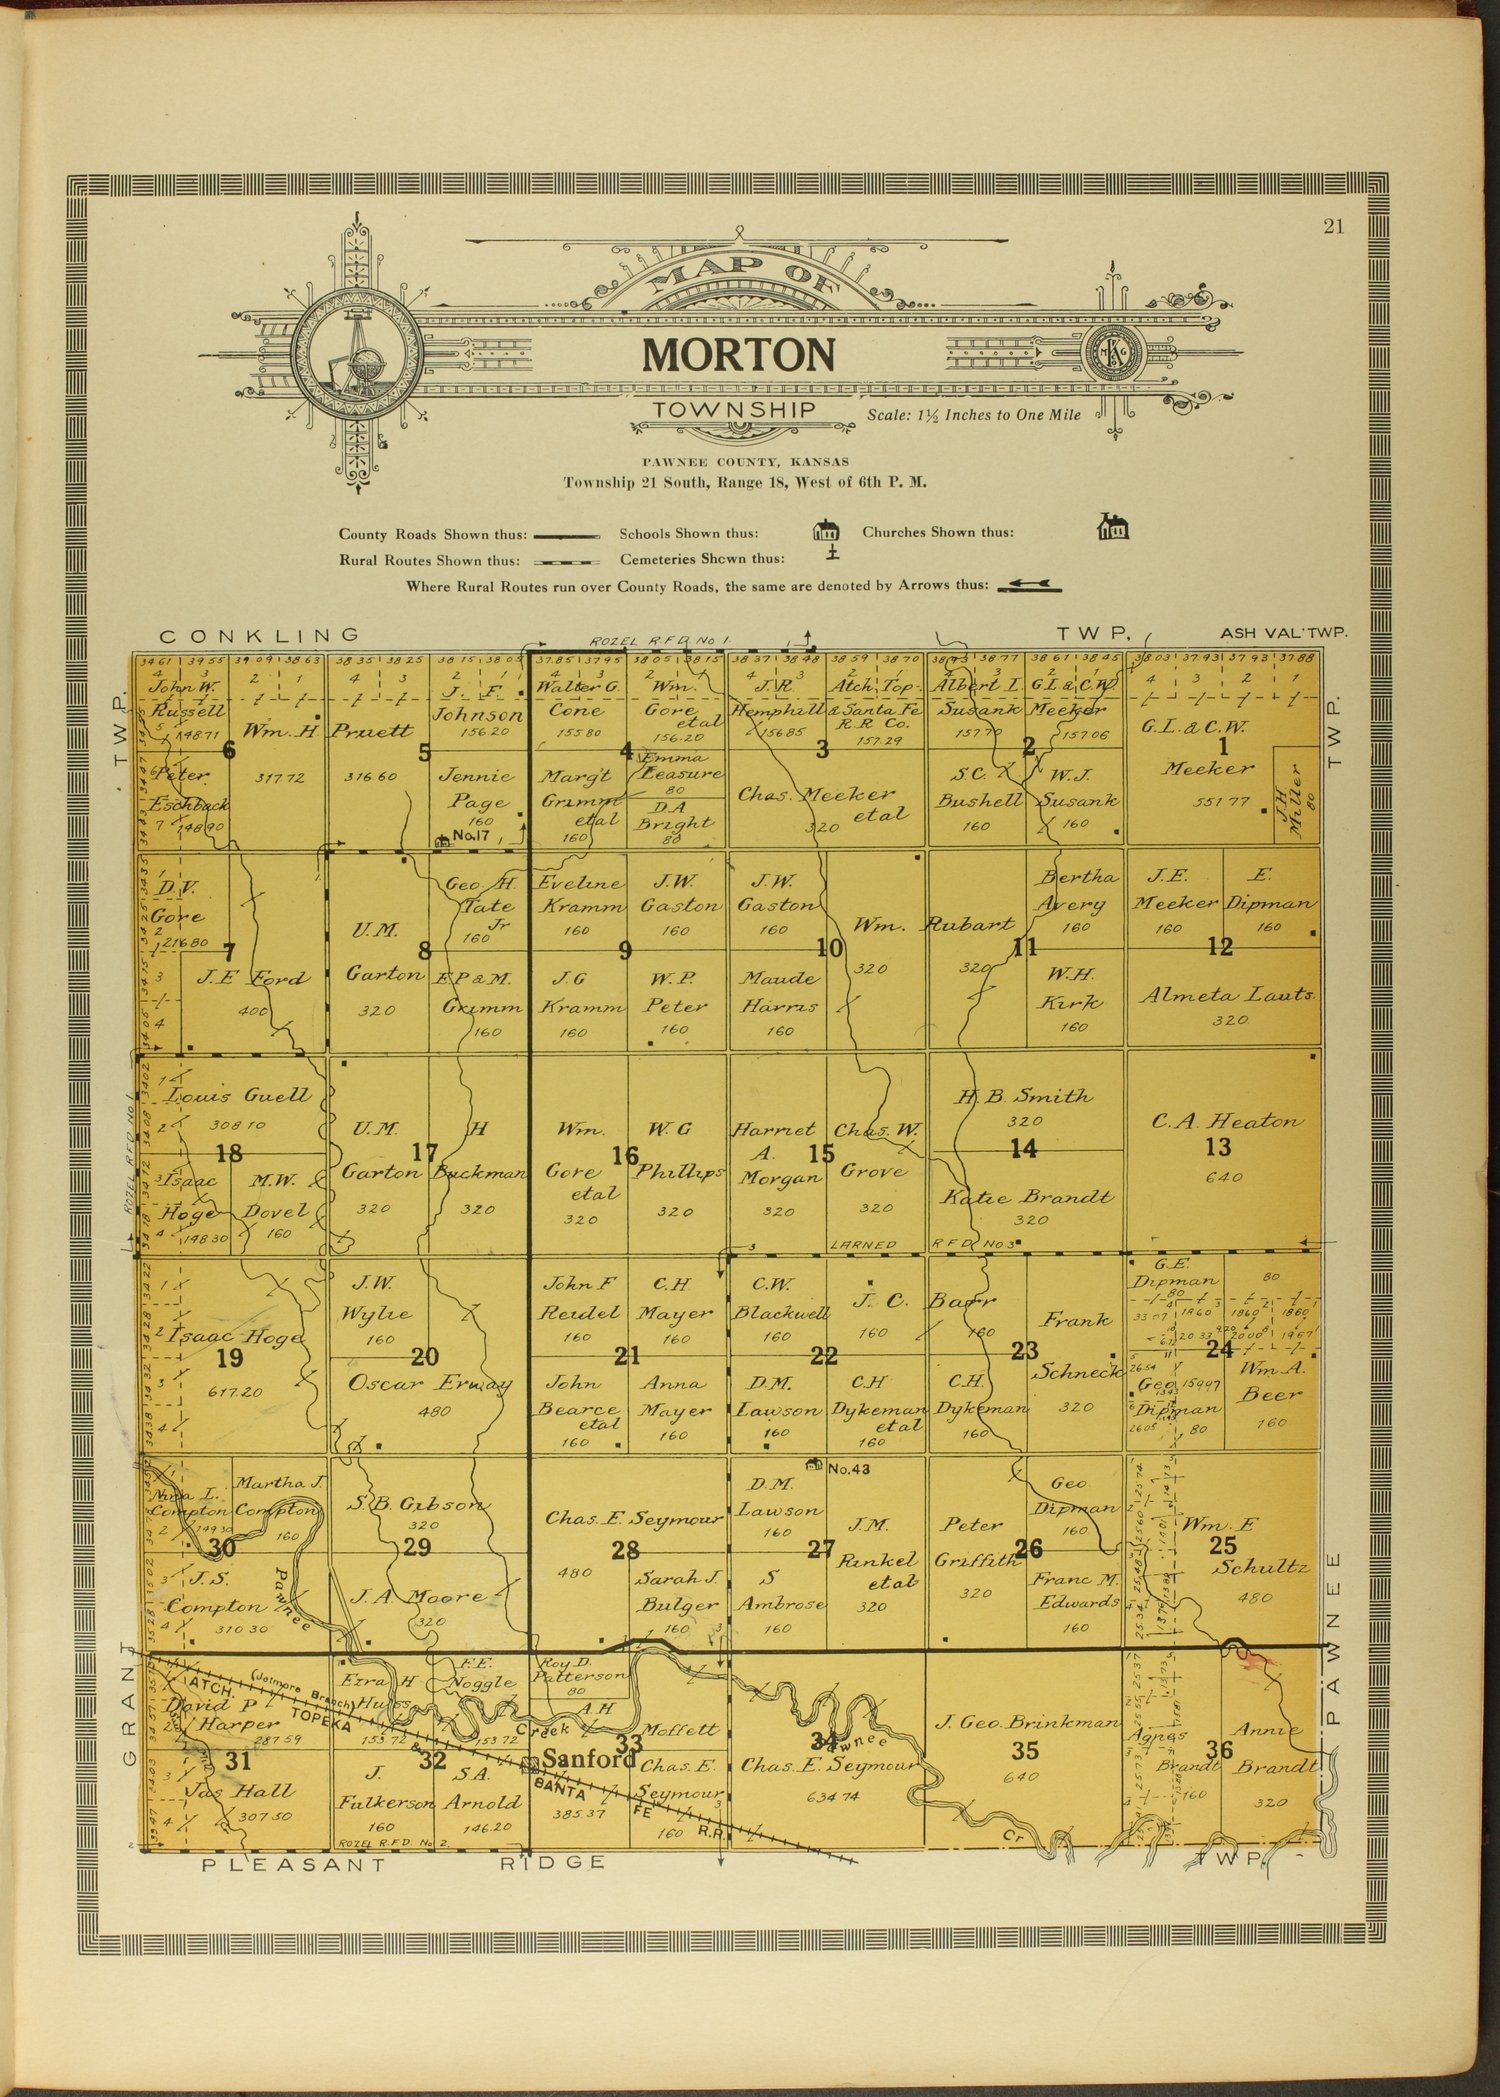 Atlas and plat book of Pawnee County, Kansas - 21